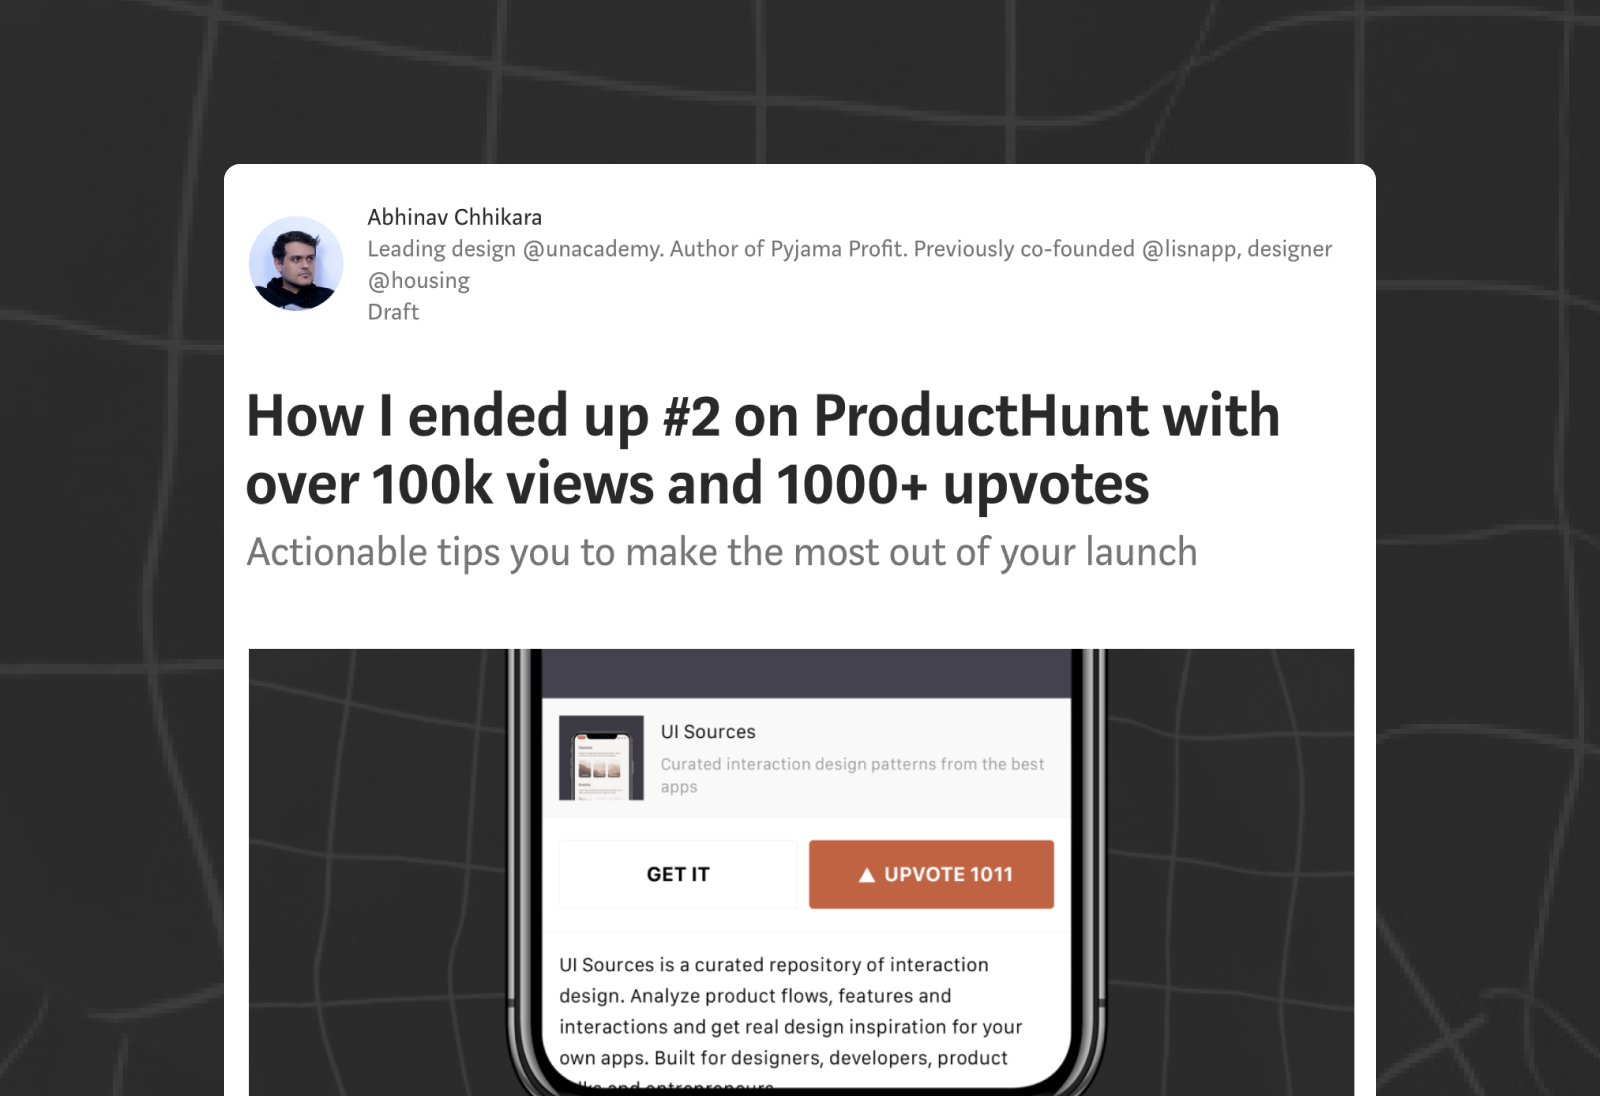 How I ended up #2 on ProductHunt with over 100k views and 1000+